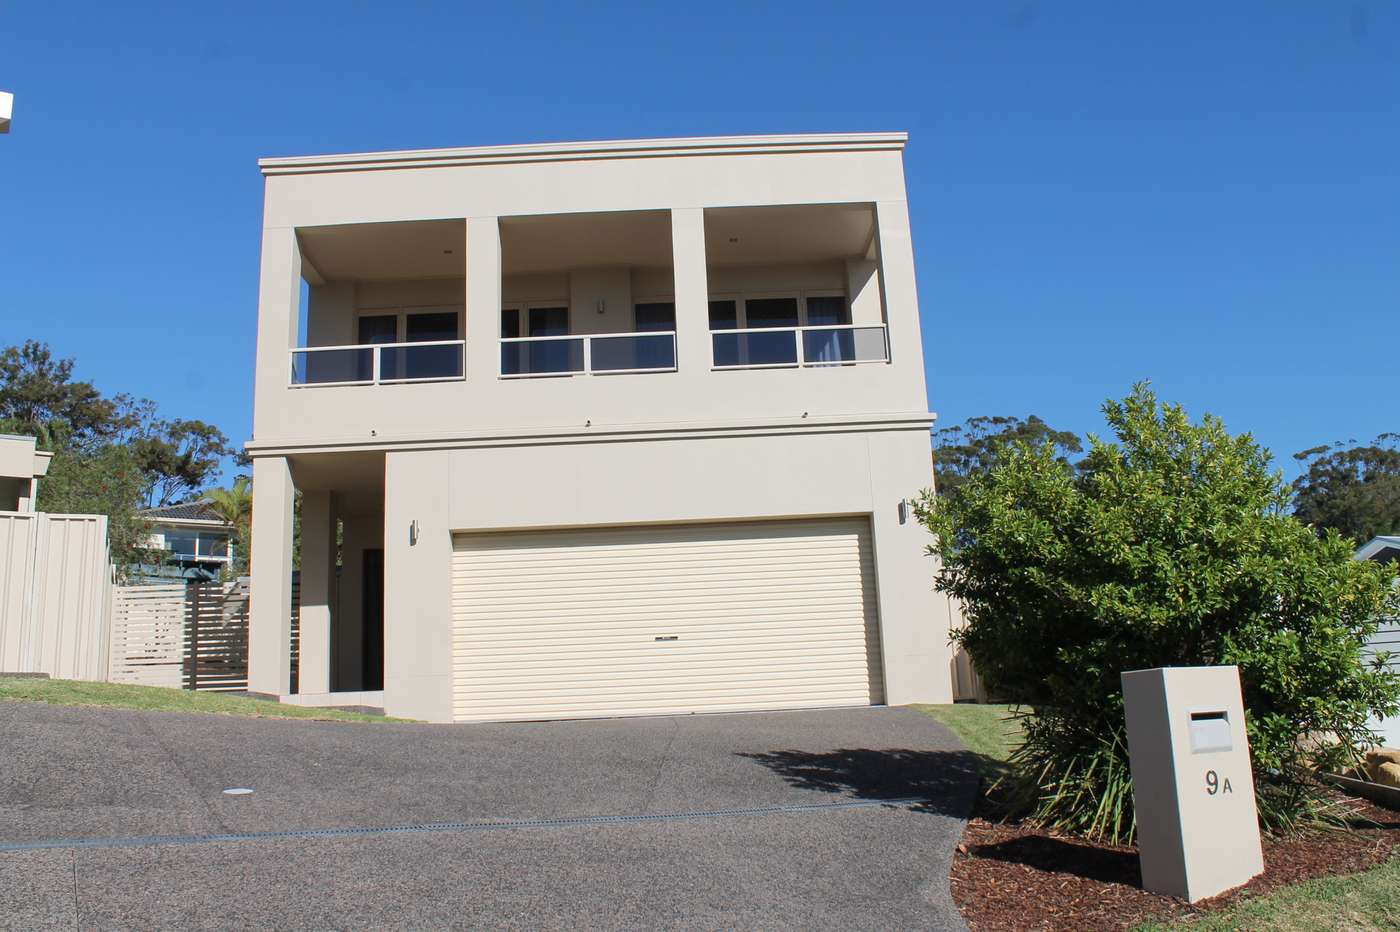 Main view of Homely house listing, 9A The Meridian, Corlette, NSW 2315